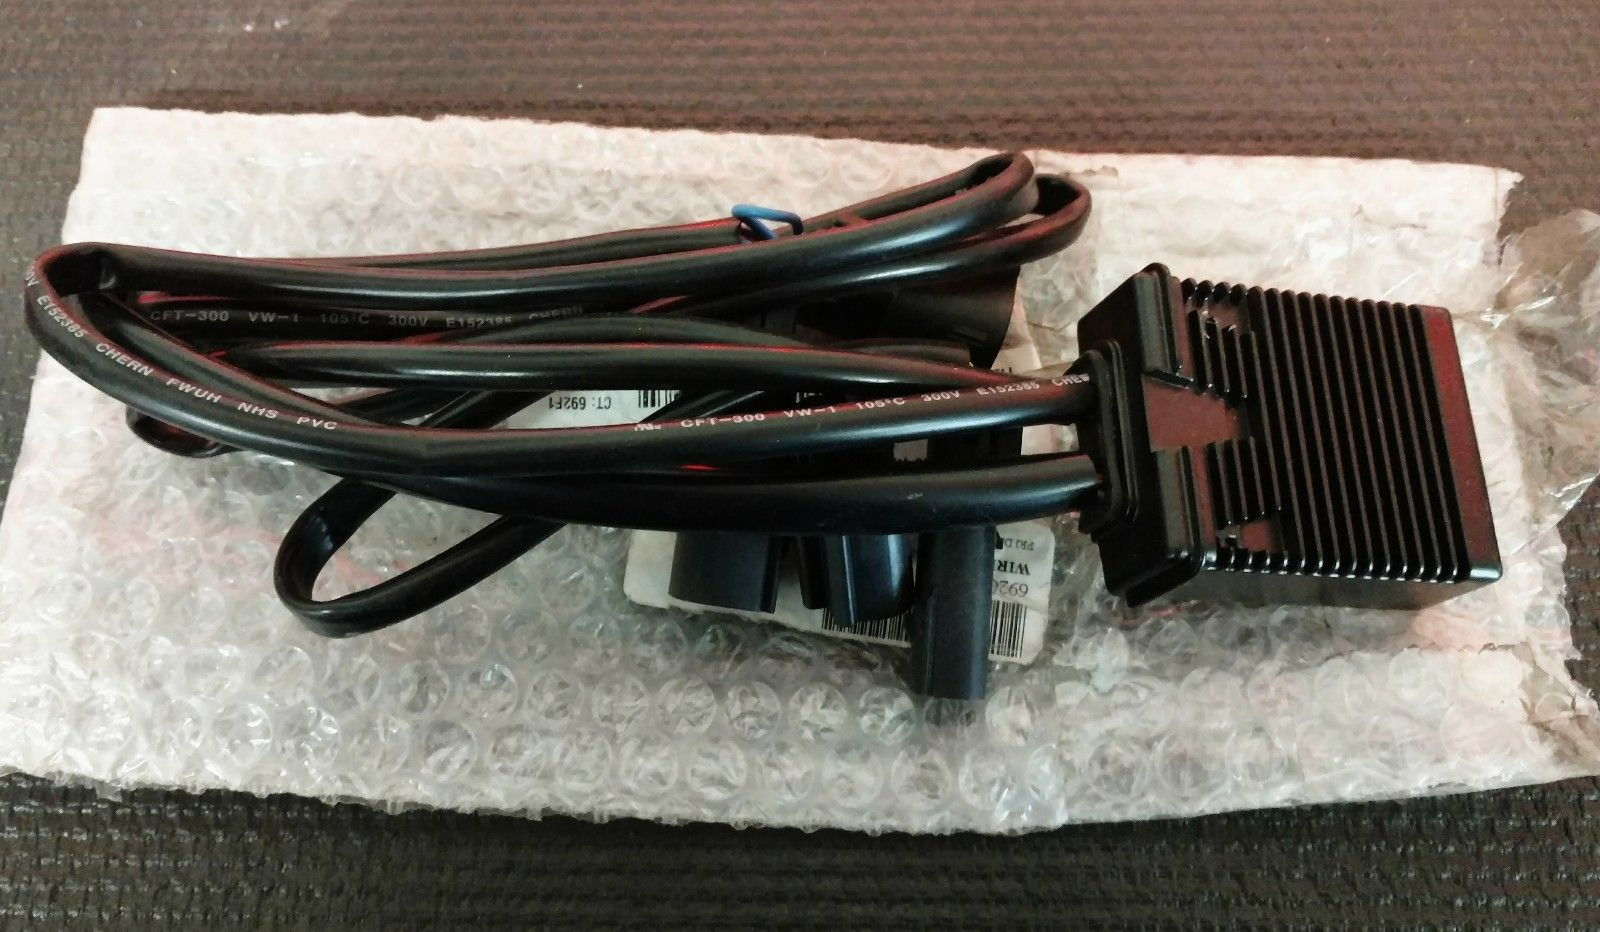 Harley Davidson Wire Harness W/ Module 69200949A - Harley ... on harley davidson wire connectors, bmw wire harness, harley davidson radio harness, harley davidson wire colors, club car wire harness, mercury marine wire harness,